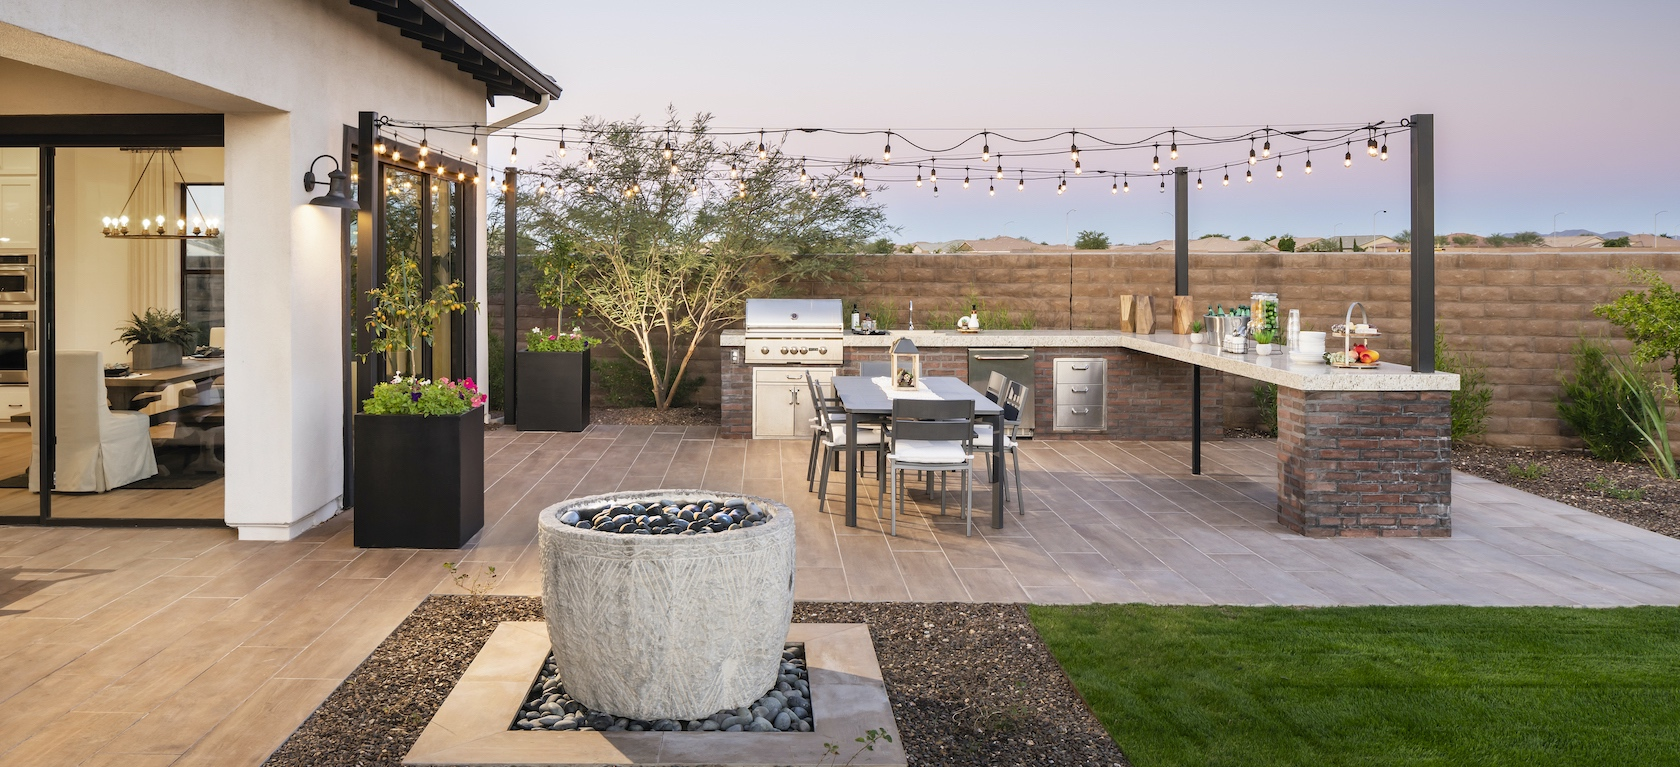 Outdoor kitchen with string lights in the backyard of a luxury house in Arizona.